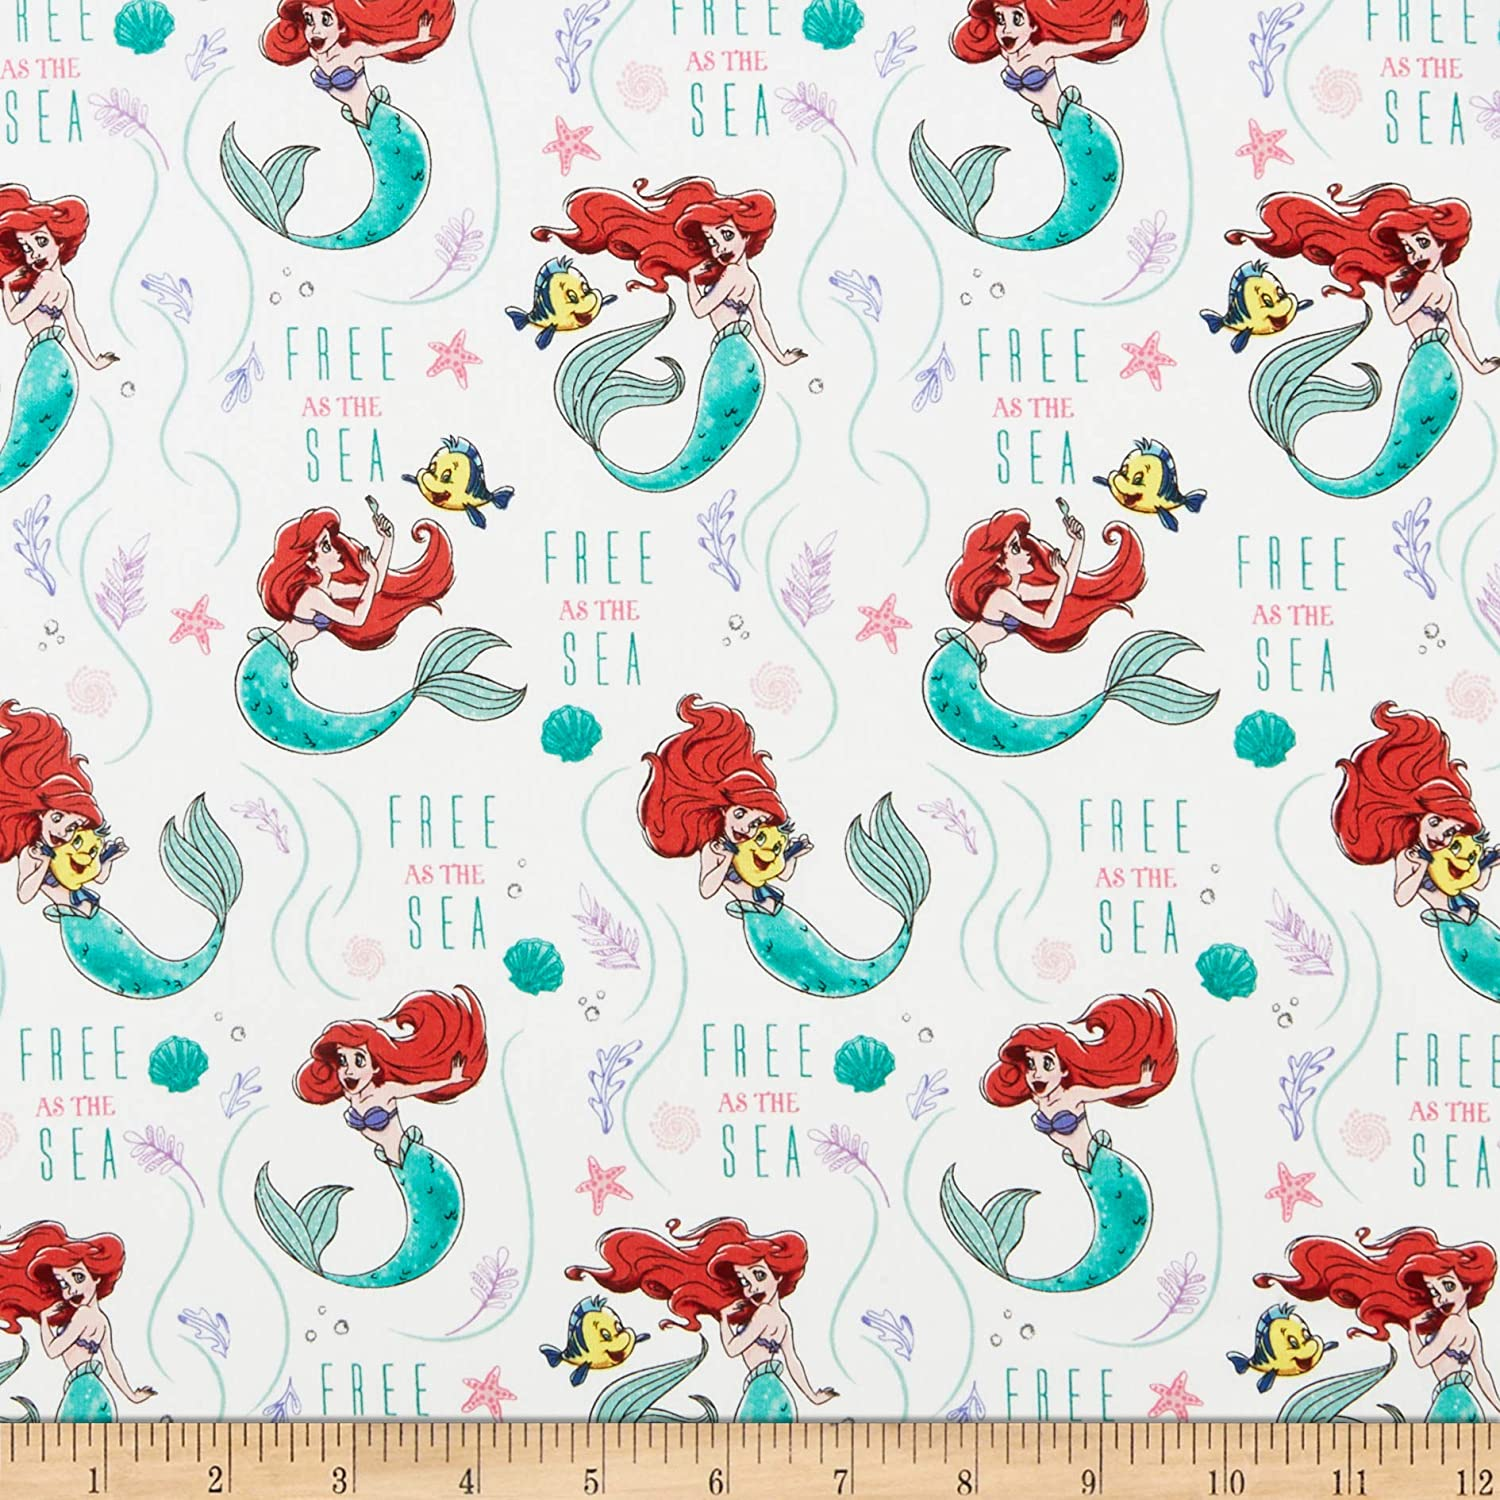 Disney Princess Ariel Free As The White Quilting store Sea by Fabric Excellence